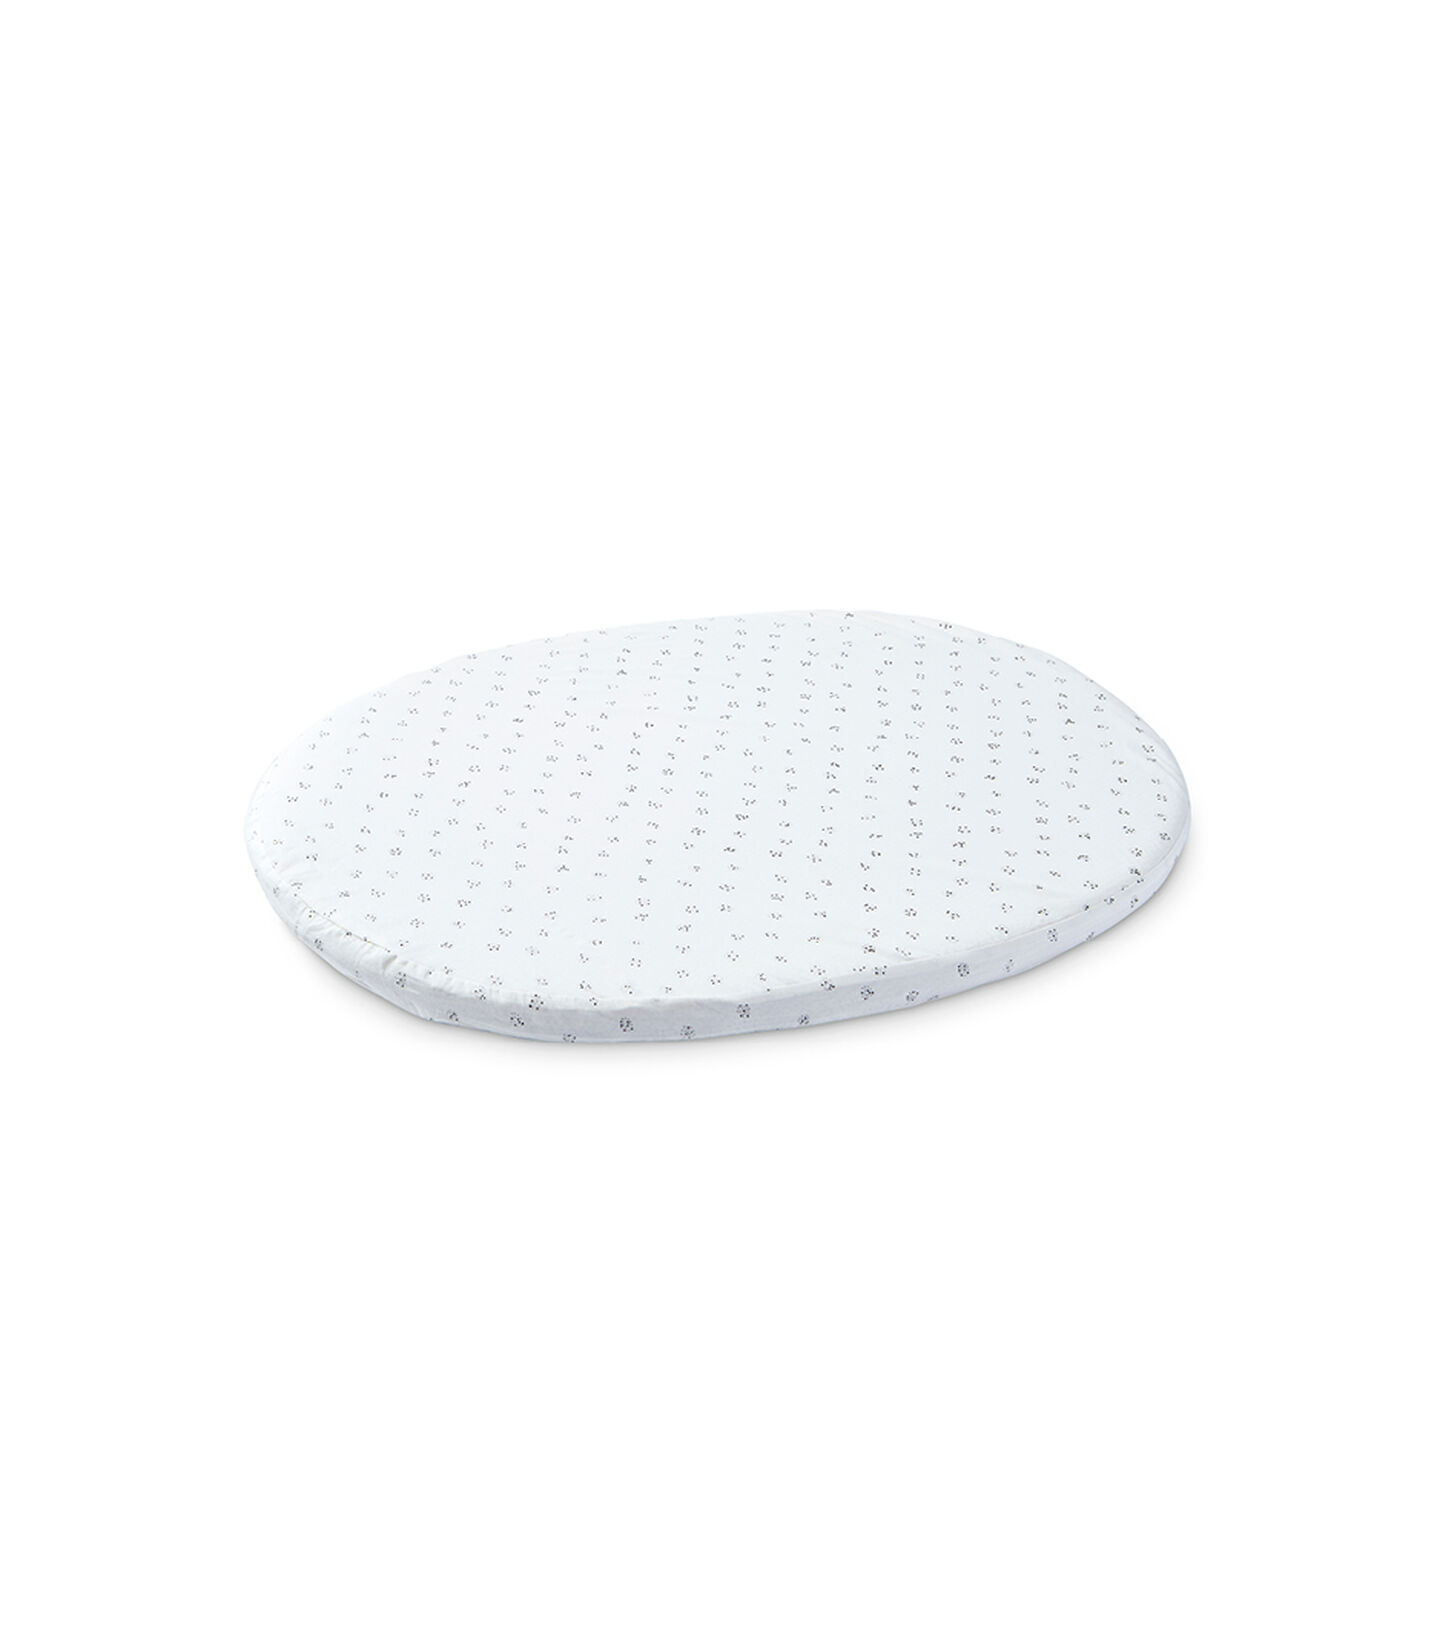 Stokke® Sleepi™ Mini Fitted Sheet Pehr Grey Dotty, Grey Dotty, mainview view 2